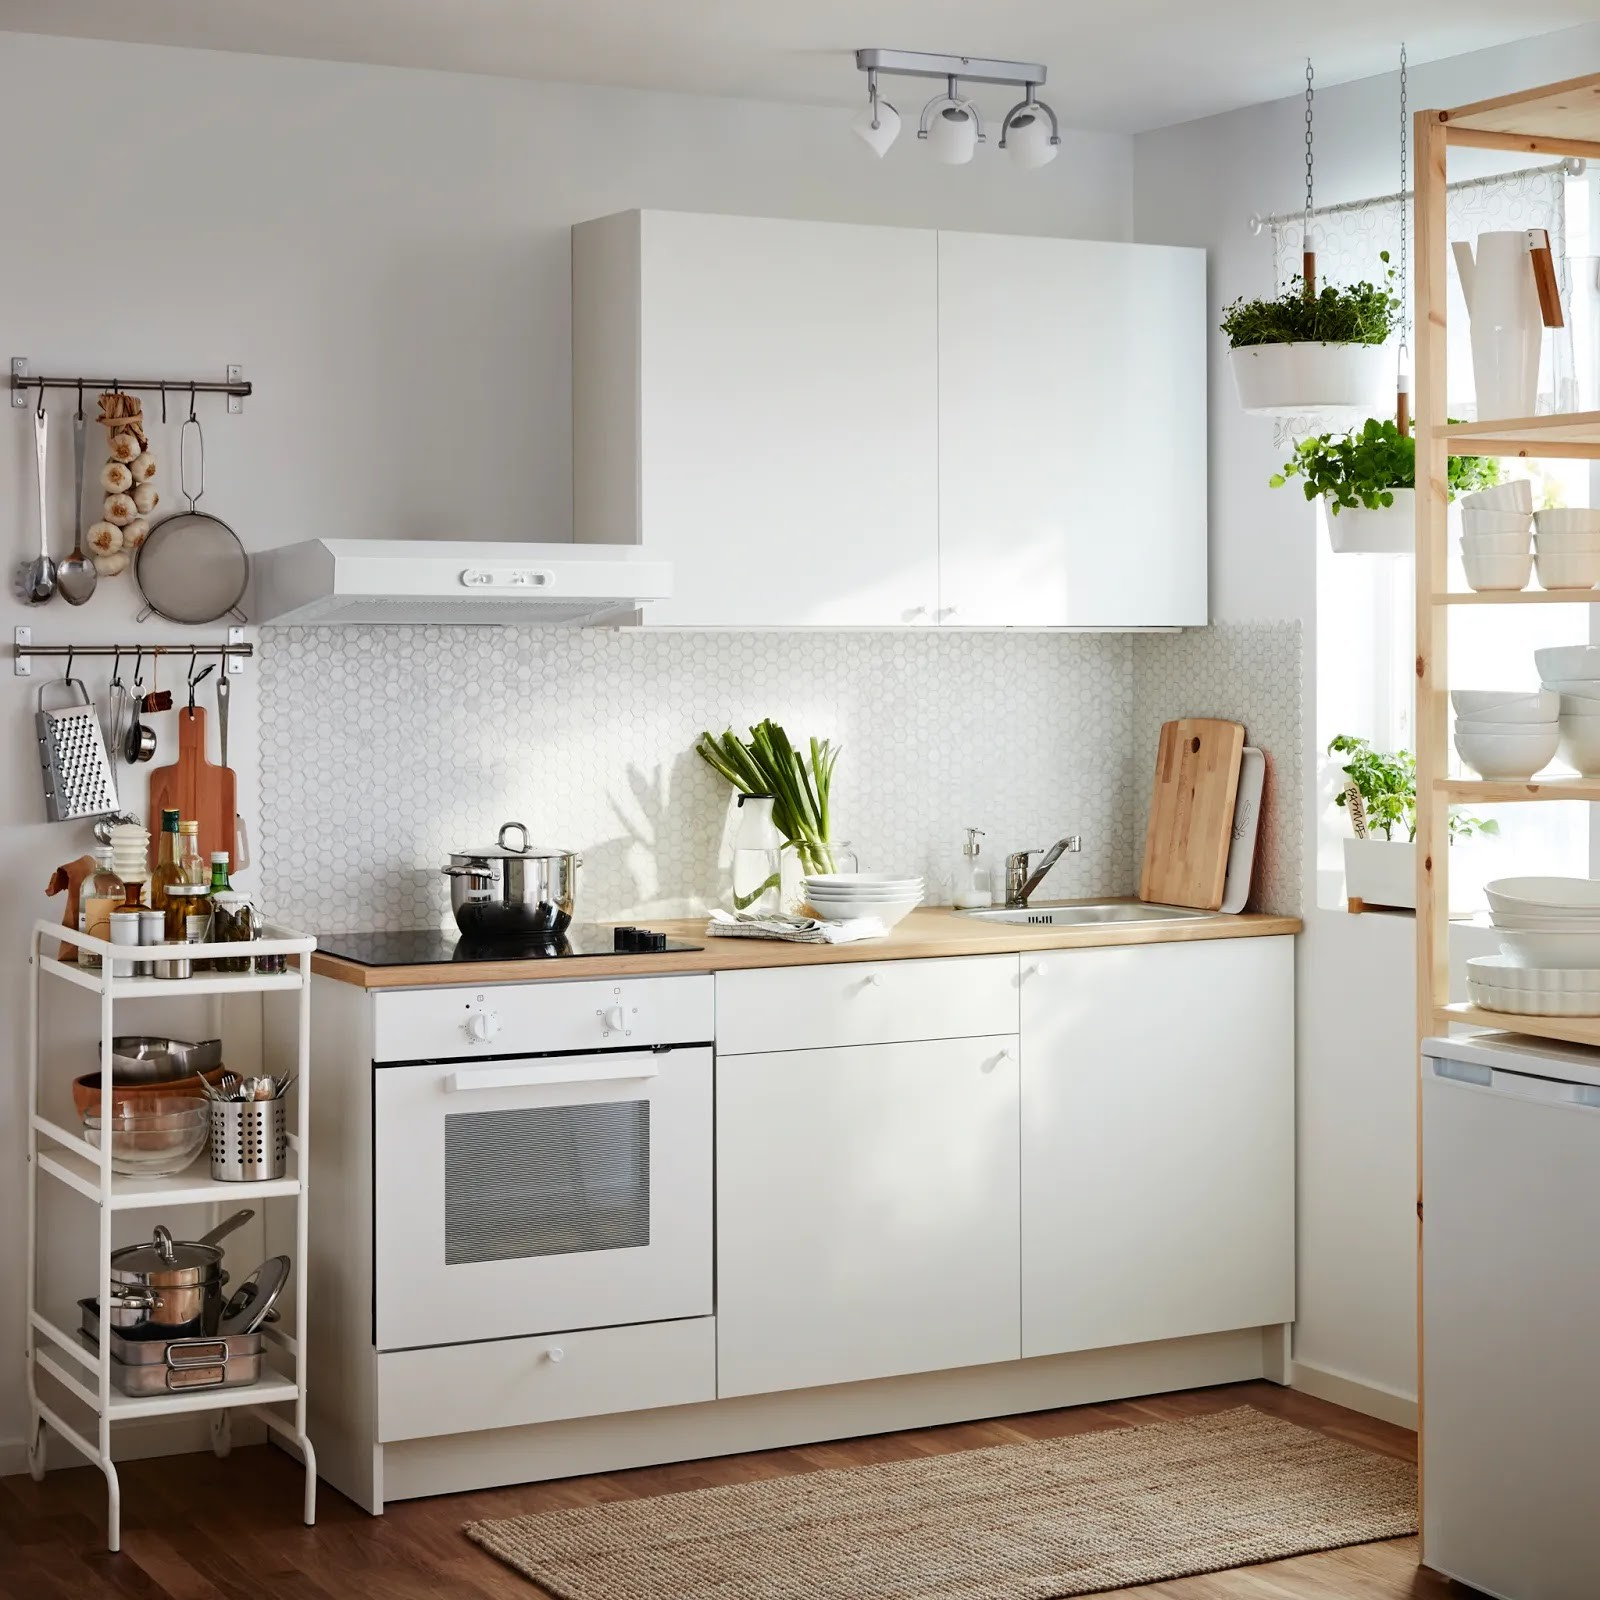 ikea all in one kitchen in four square metres s5 webp